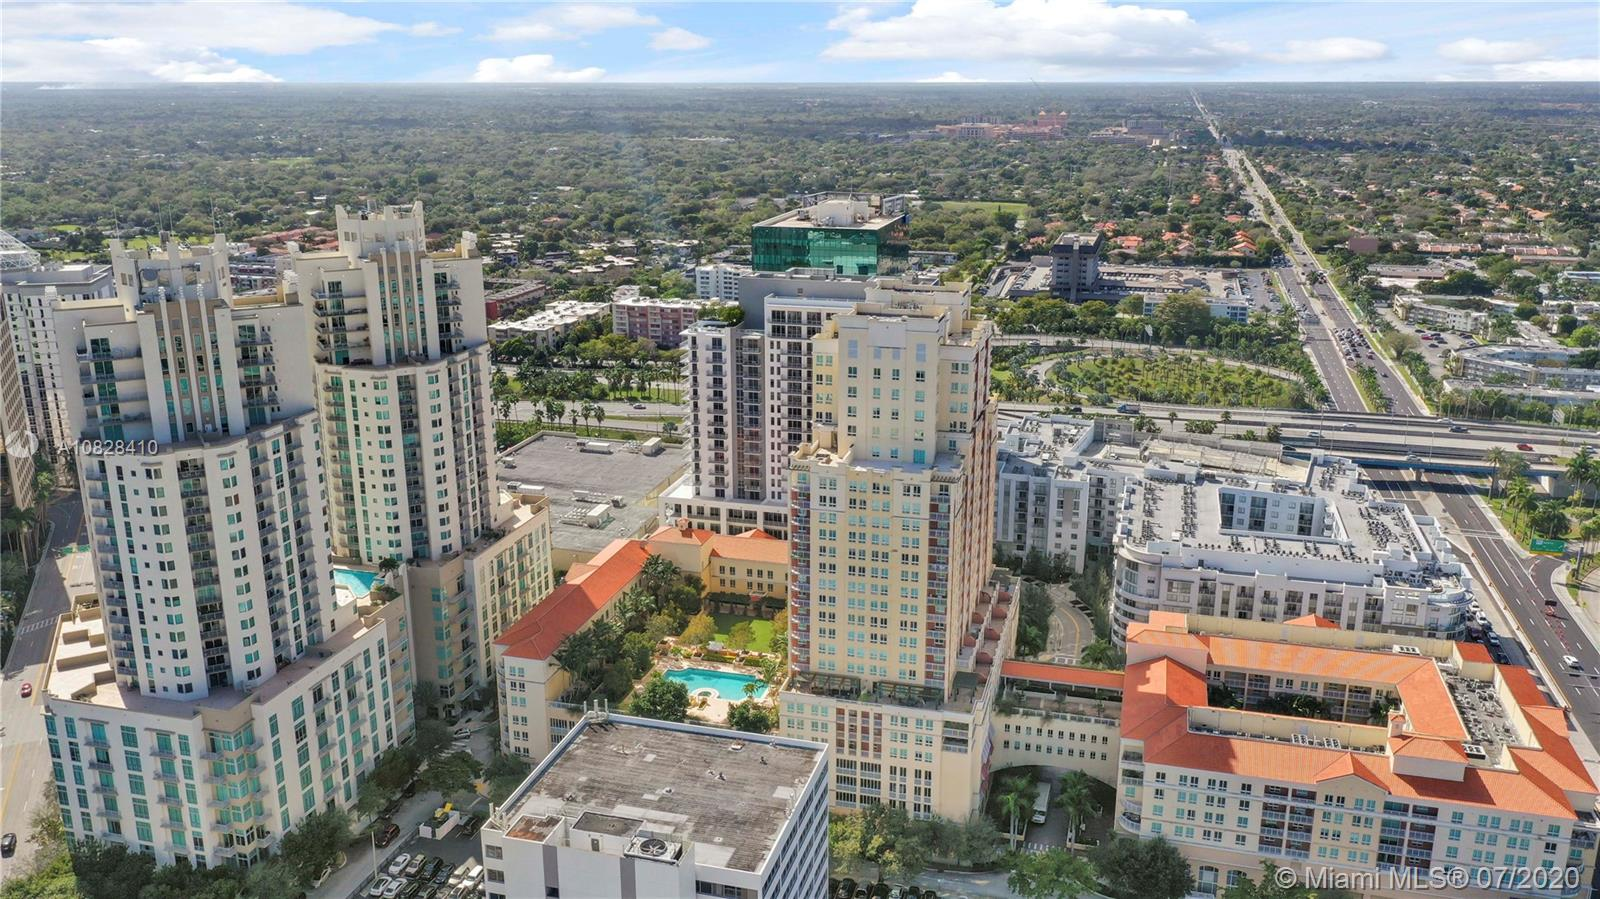 7350 SW 89th St, Coral Gables, Florida